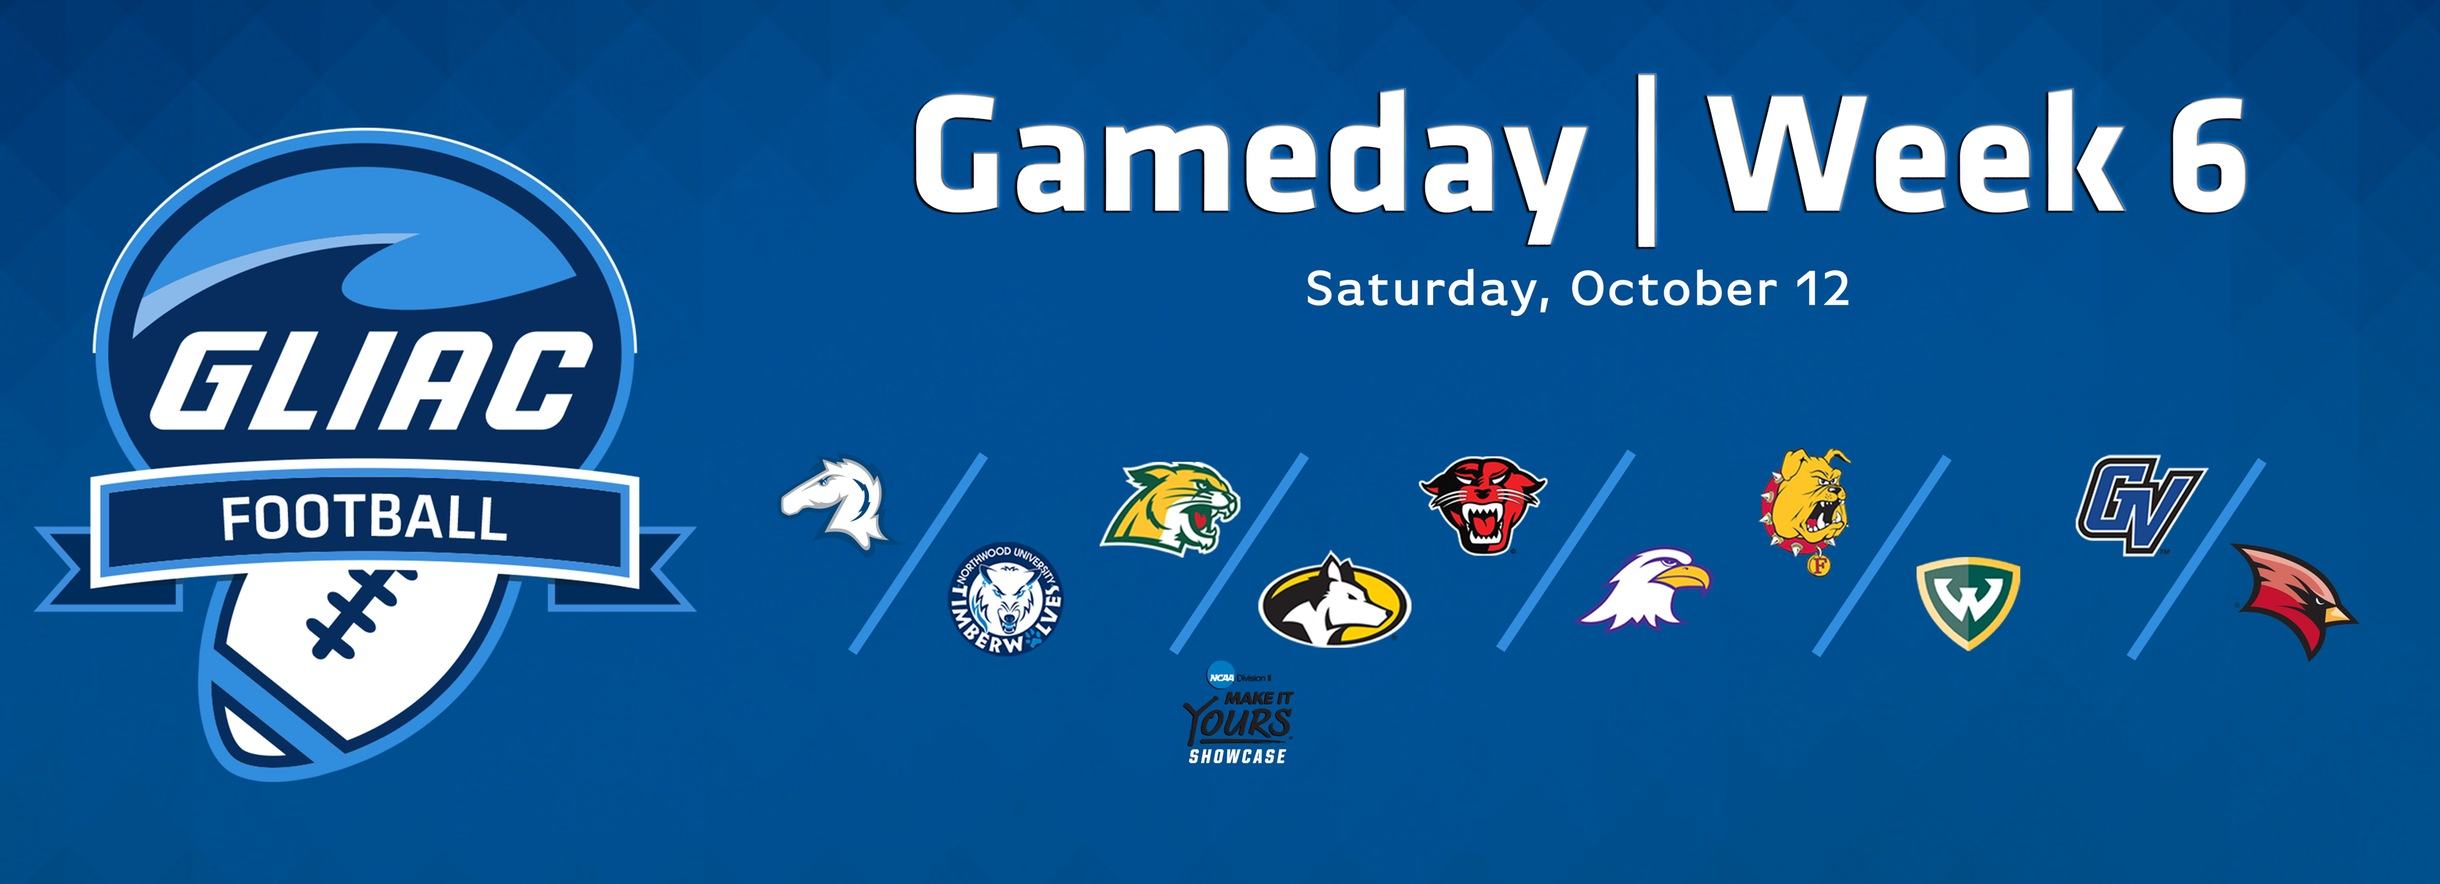 2019 GLIAC Football Gameday - Week 6